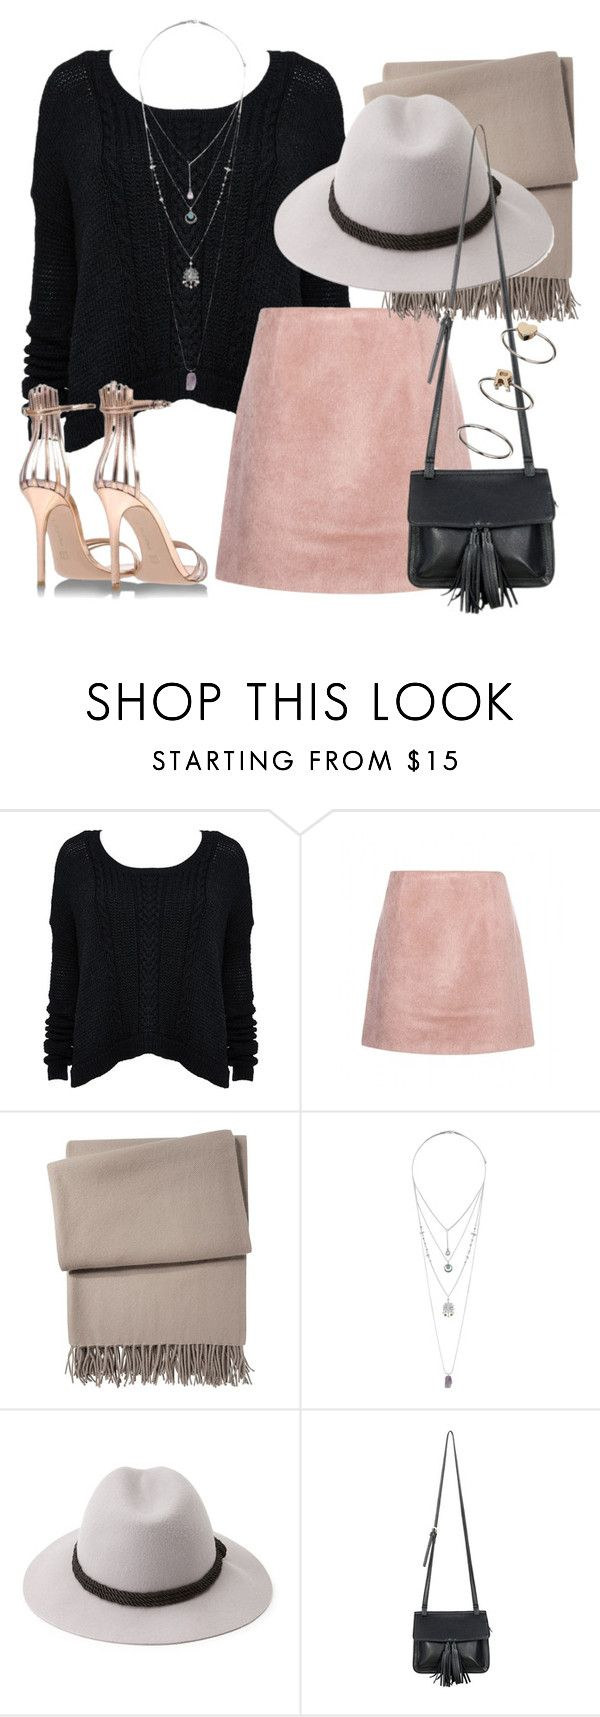 """Untitled #2206"" by dceee ❤ liked on Polyvore featuring Alice + Olivia, Acne Studios, Gianvito Rossi, Yves Delorme, Miss Selfridge, Forever 21, Chicnova Fashion and Topshop"